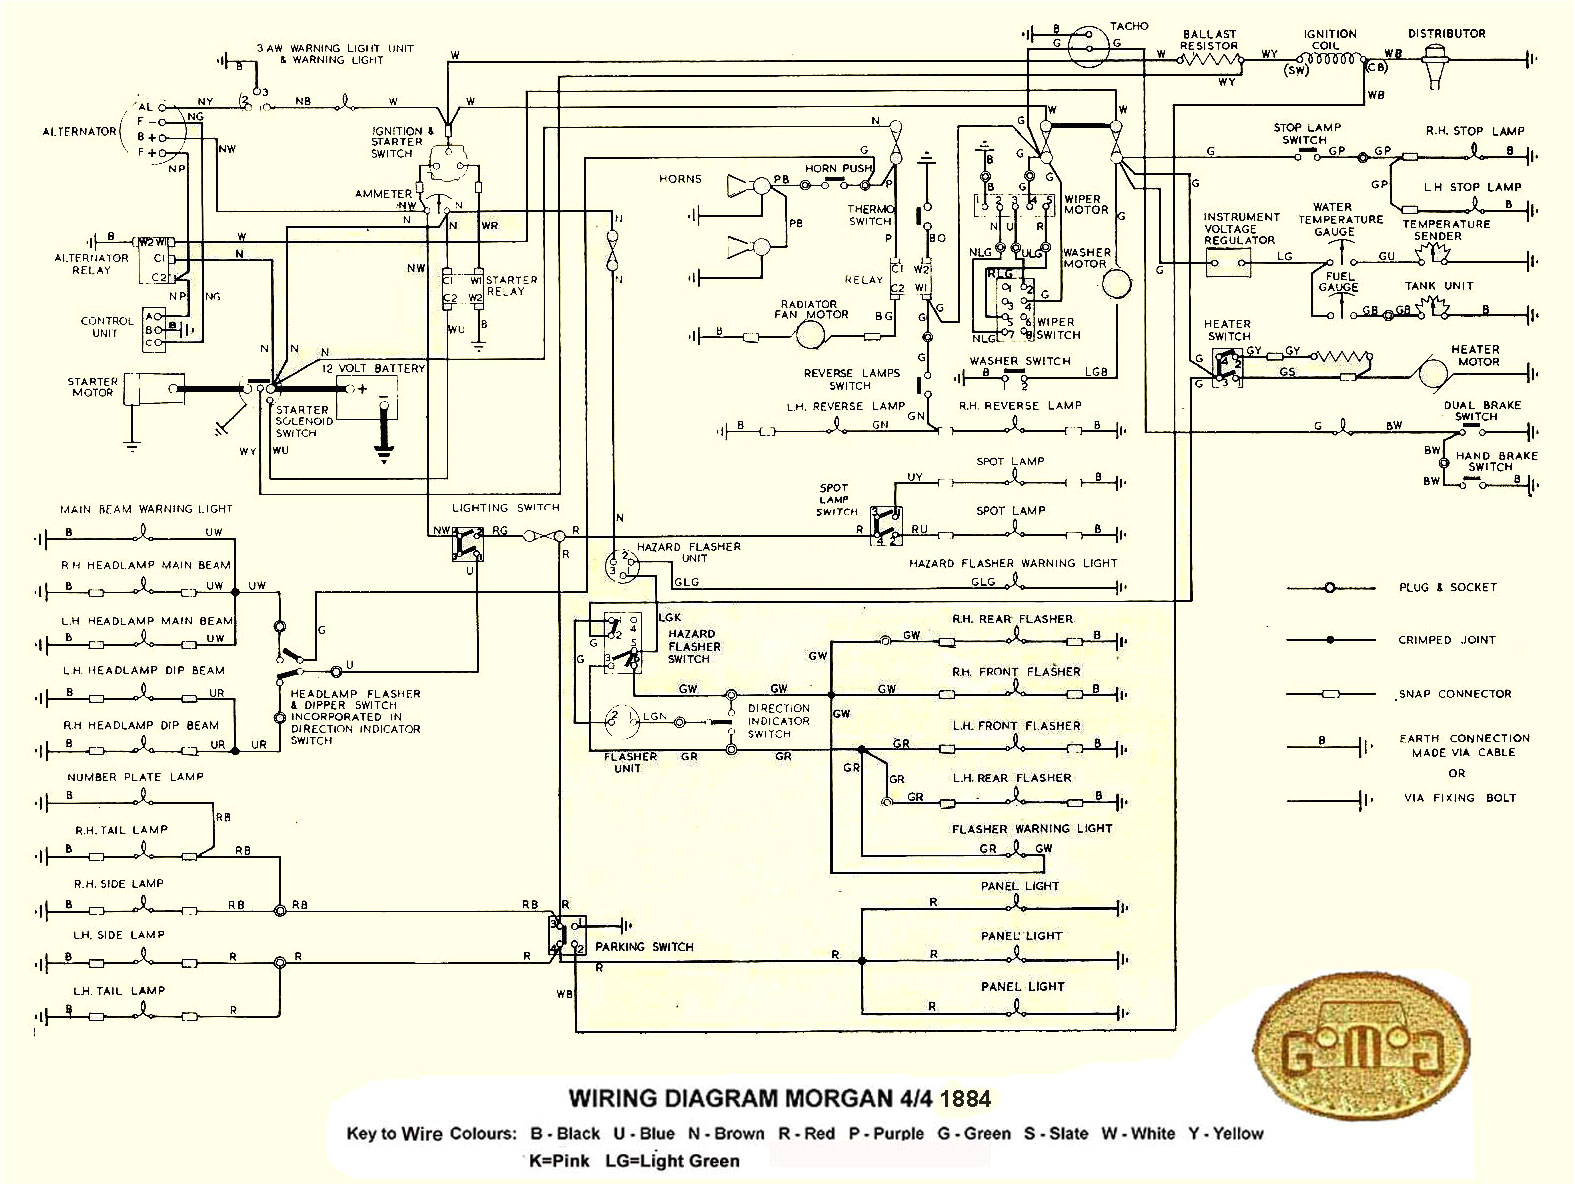 morgan electricalmorgan wiring diagram 3